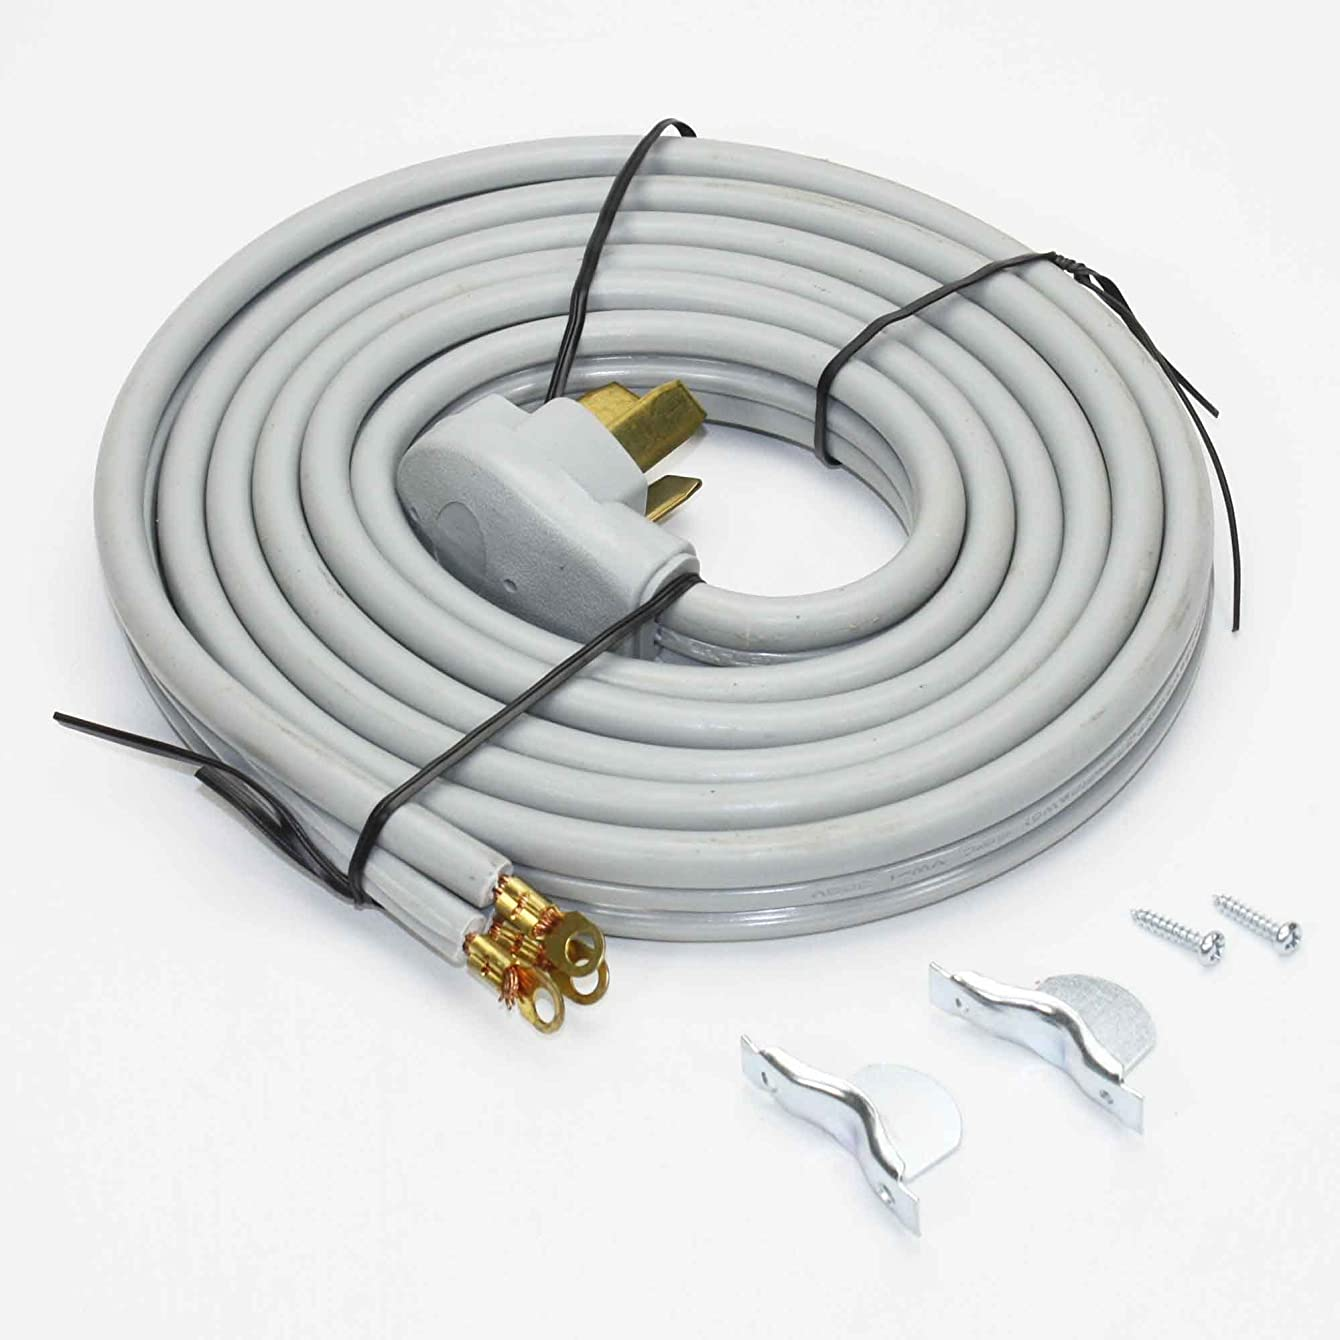 RC3-50-10 Range Stove Oven Power Cord | 3 Wire | 10 Feet Long | 50 Amp 220 Volt